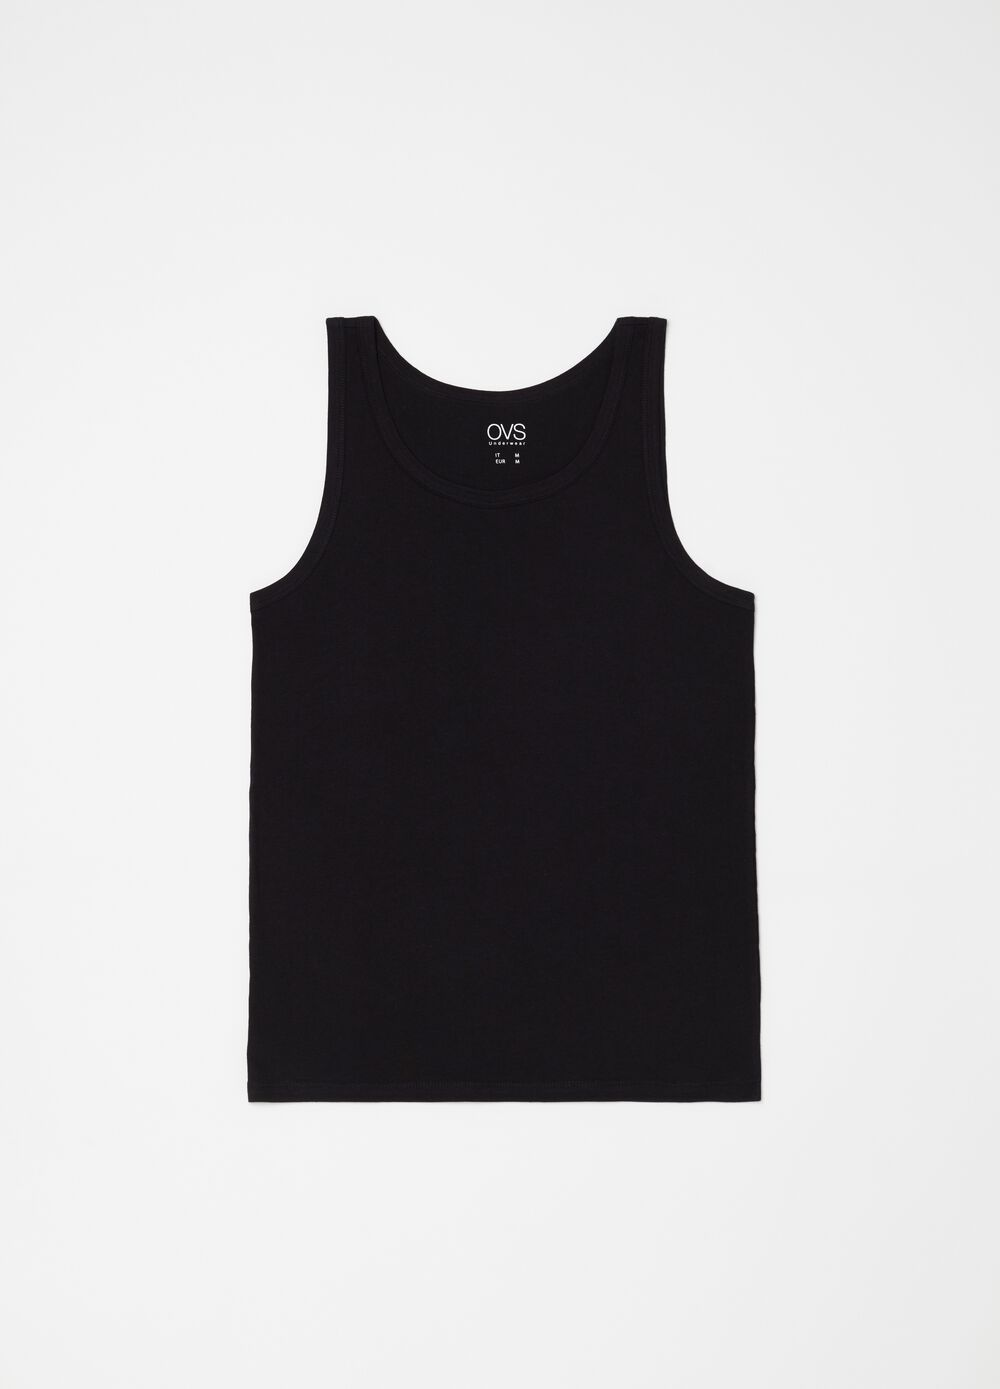 100% cotton racerback top with round neck